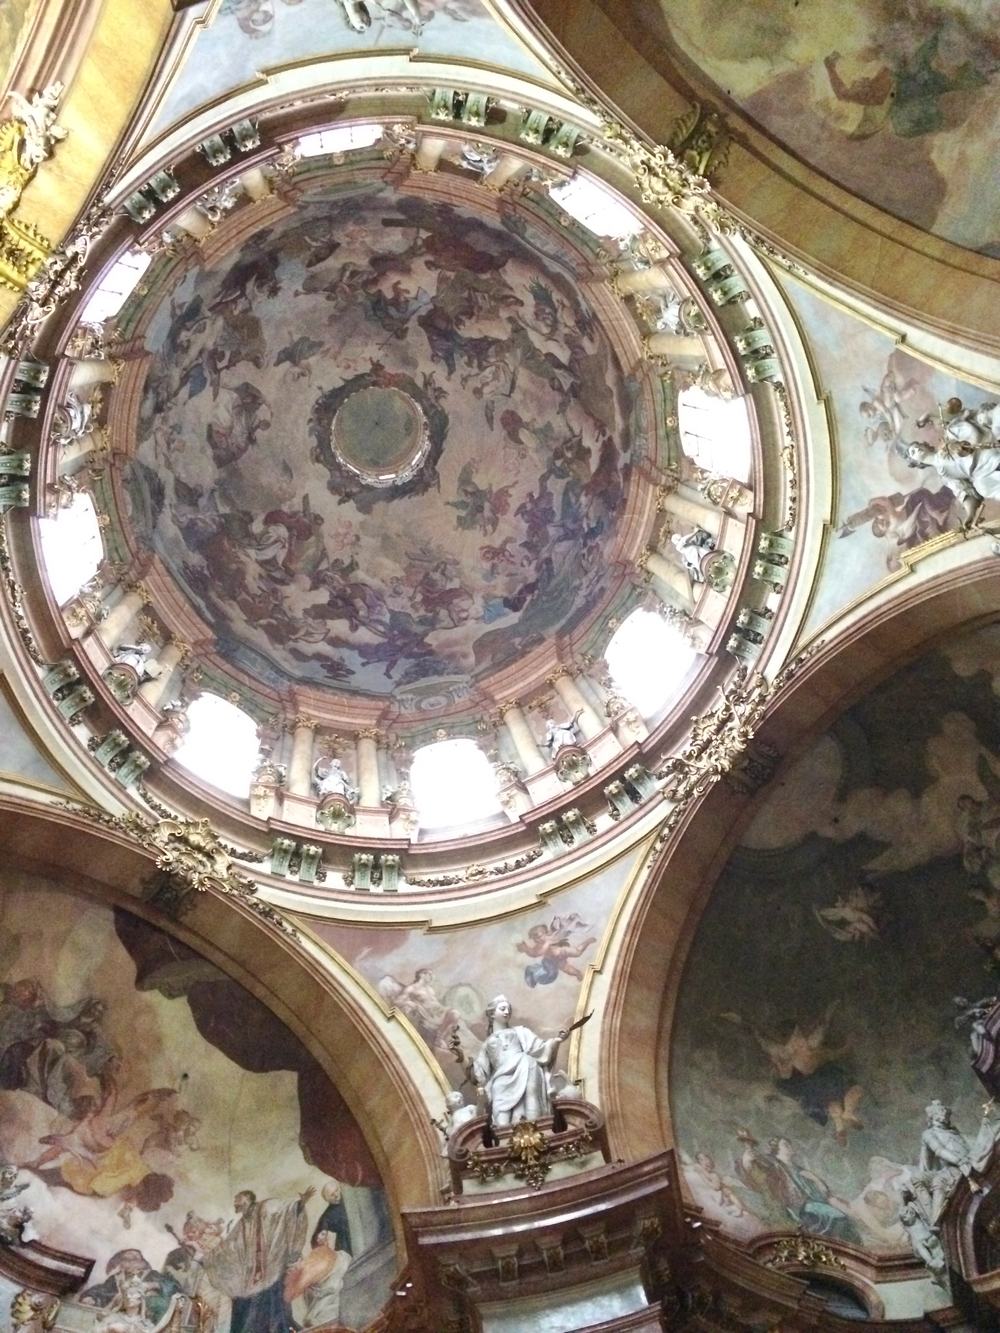 A view of the ceiling the St. Nicholas church.